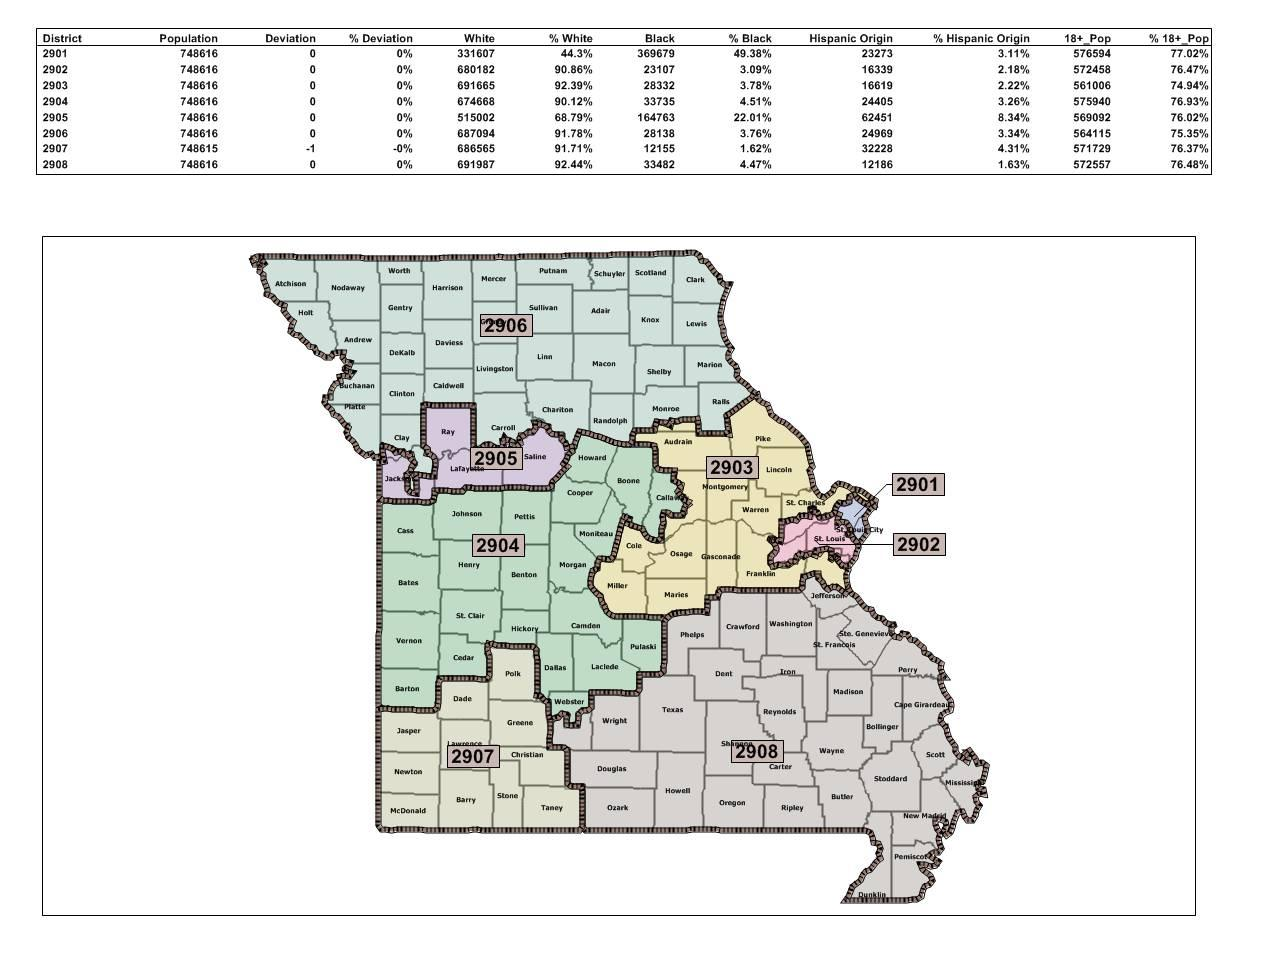 Mo House Rejects Senate Redistricting Map Asks For Conference - Missouri us congressional district map